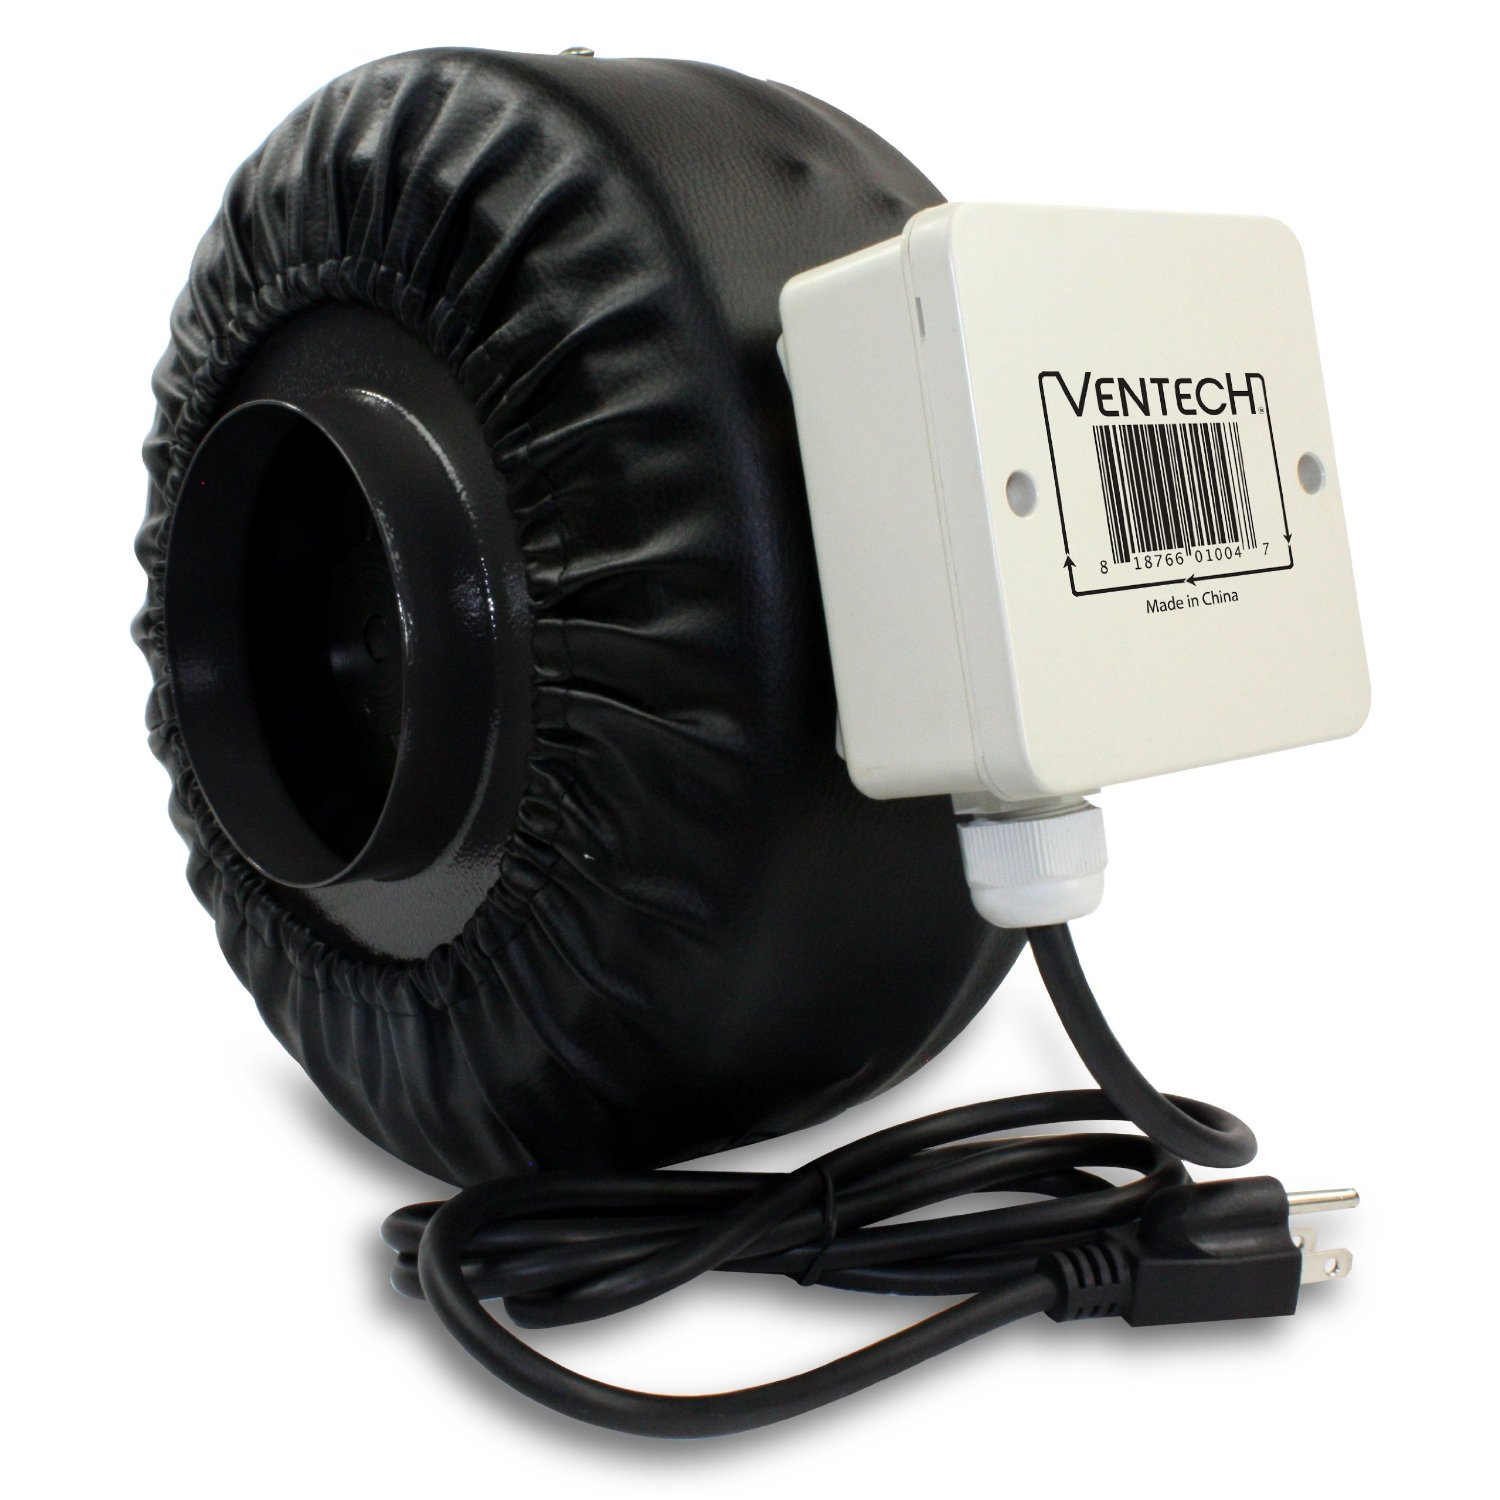 VenTech 8 inch Inline Exhaust Fan Blower Centrifugal Fan #736A58